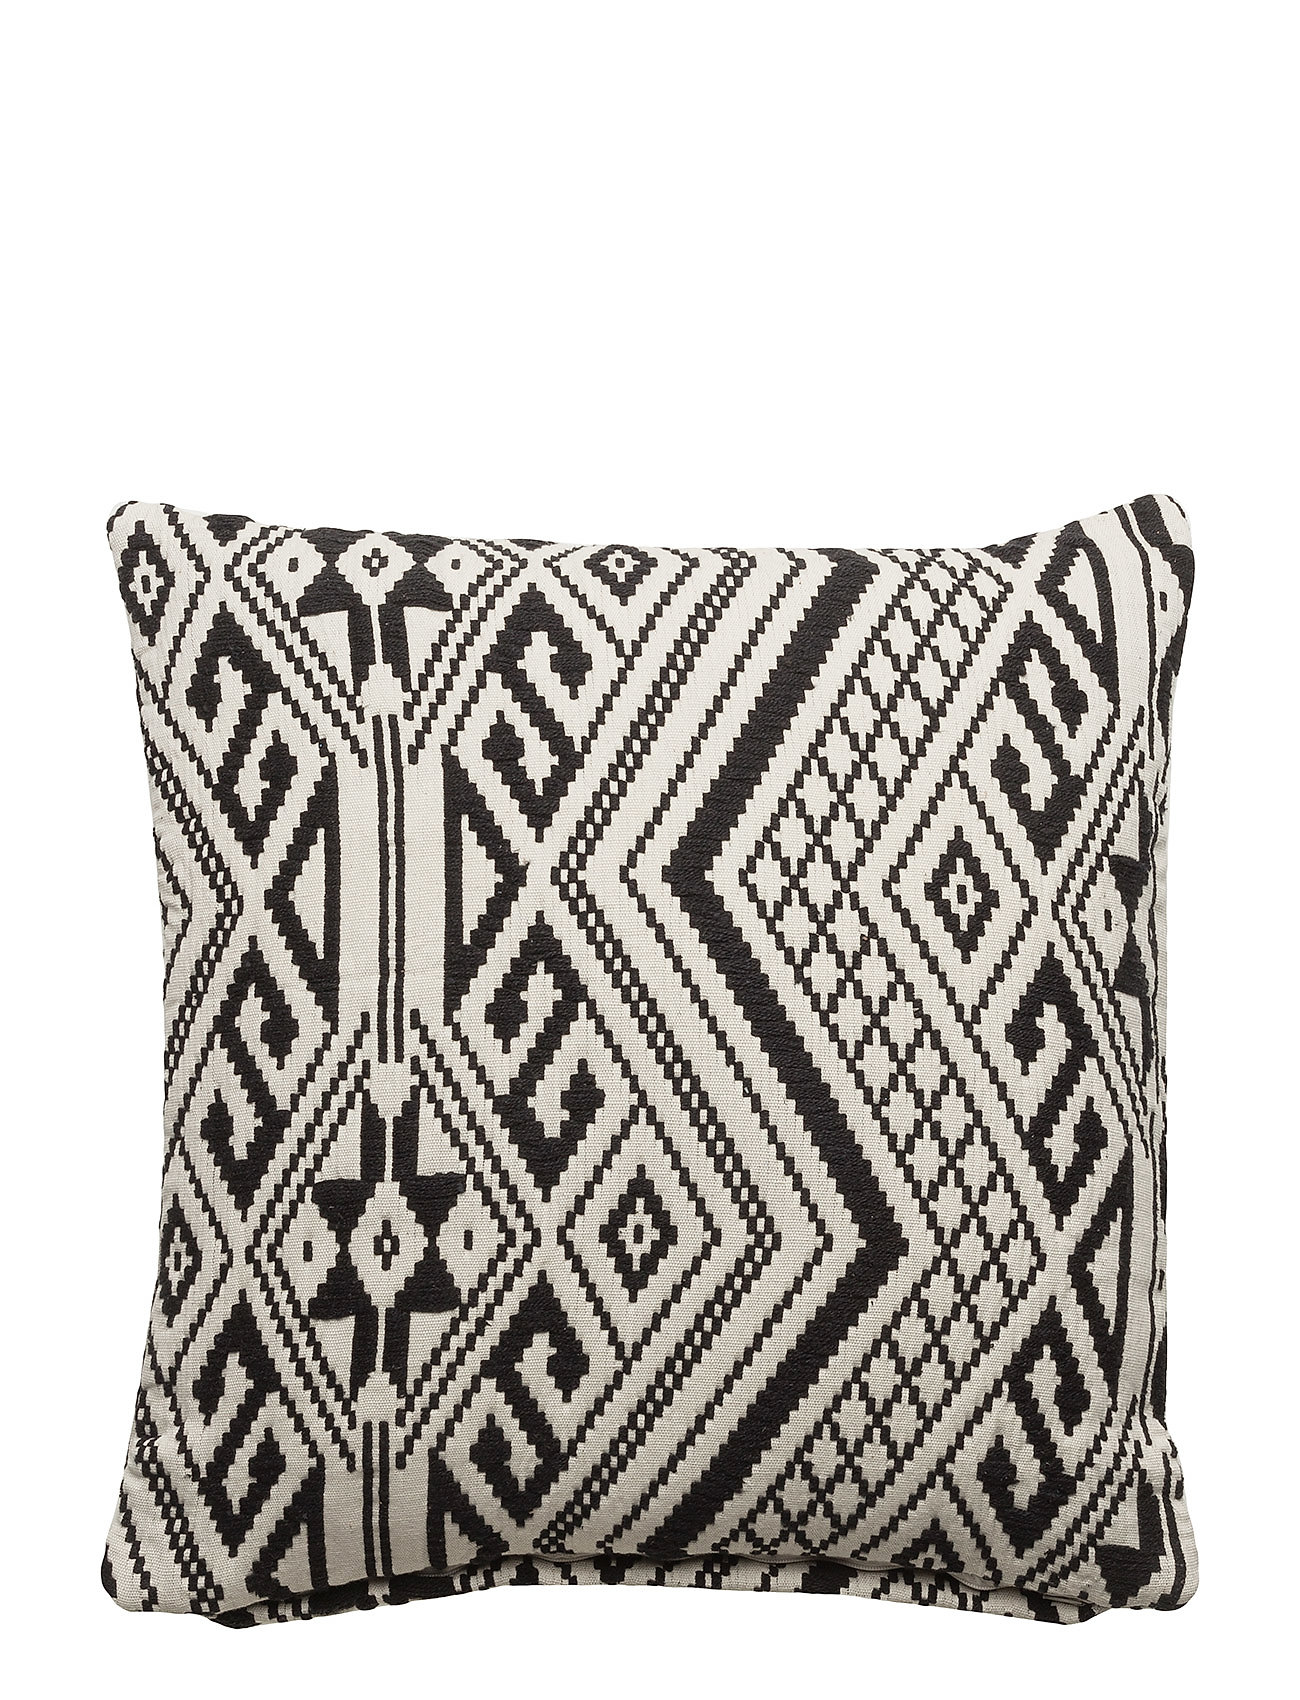 DAY Home Day Cushion cover Jacquard - BLACK/WHITE